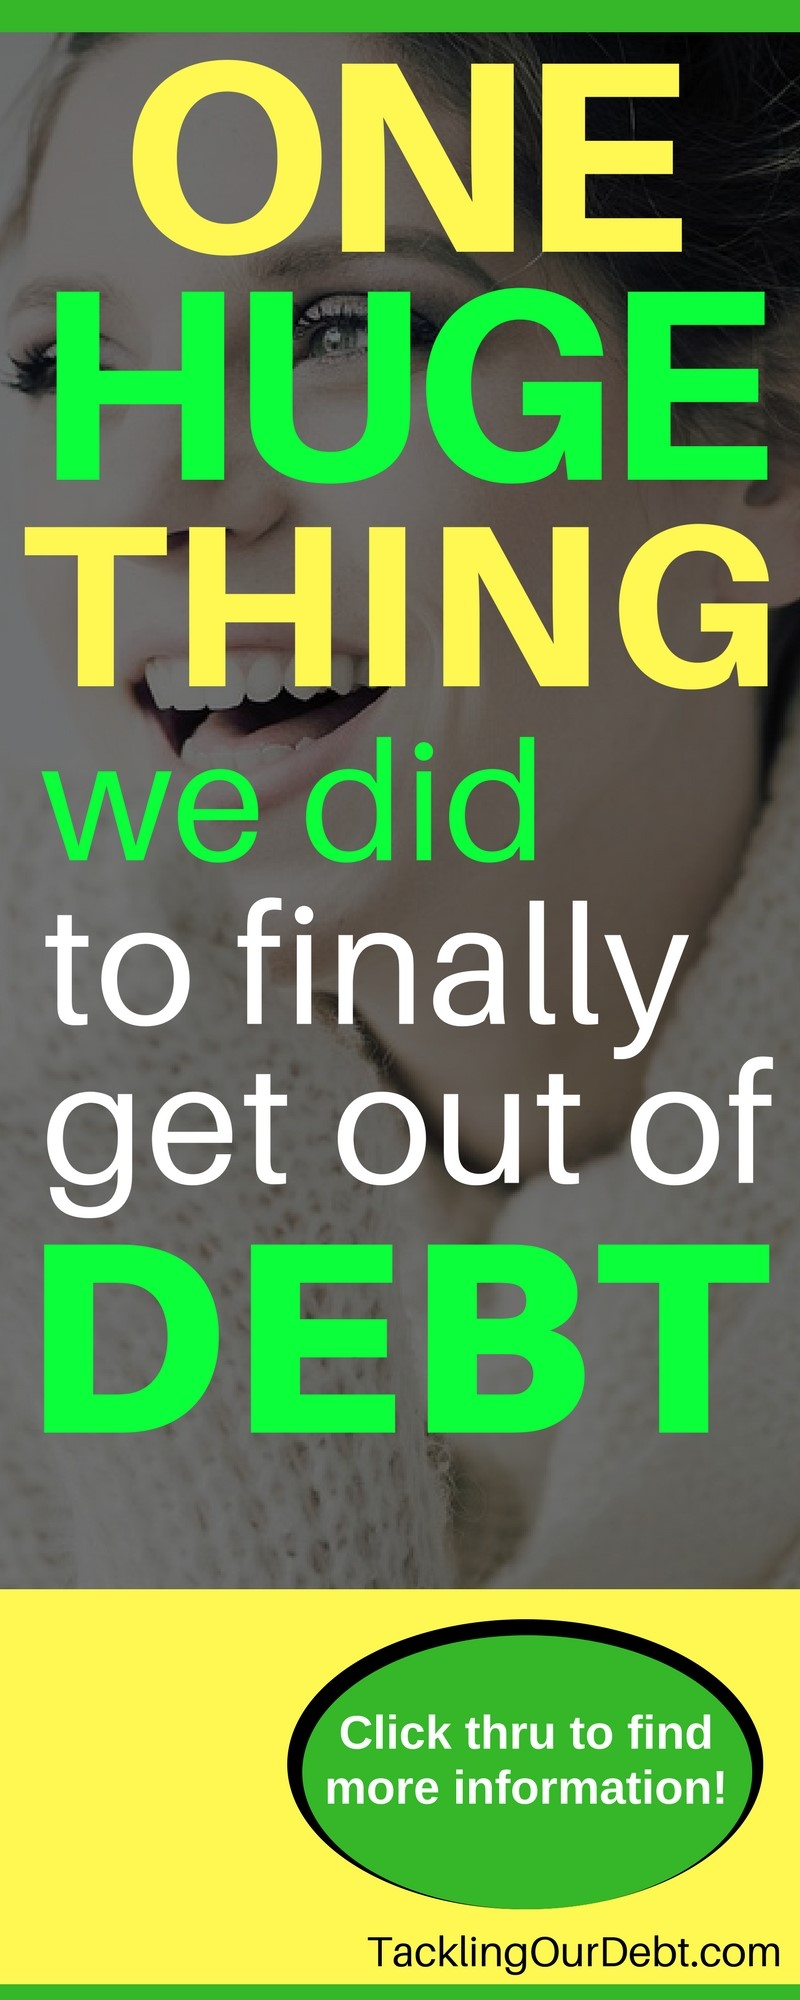 Manage Your Money: One huge thing we did to finally get out of debt and rebuild our personal #finances. Click thru to learn more!